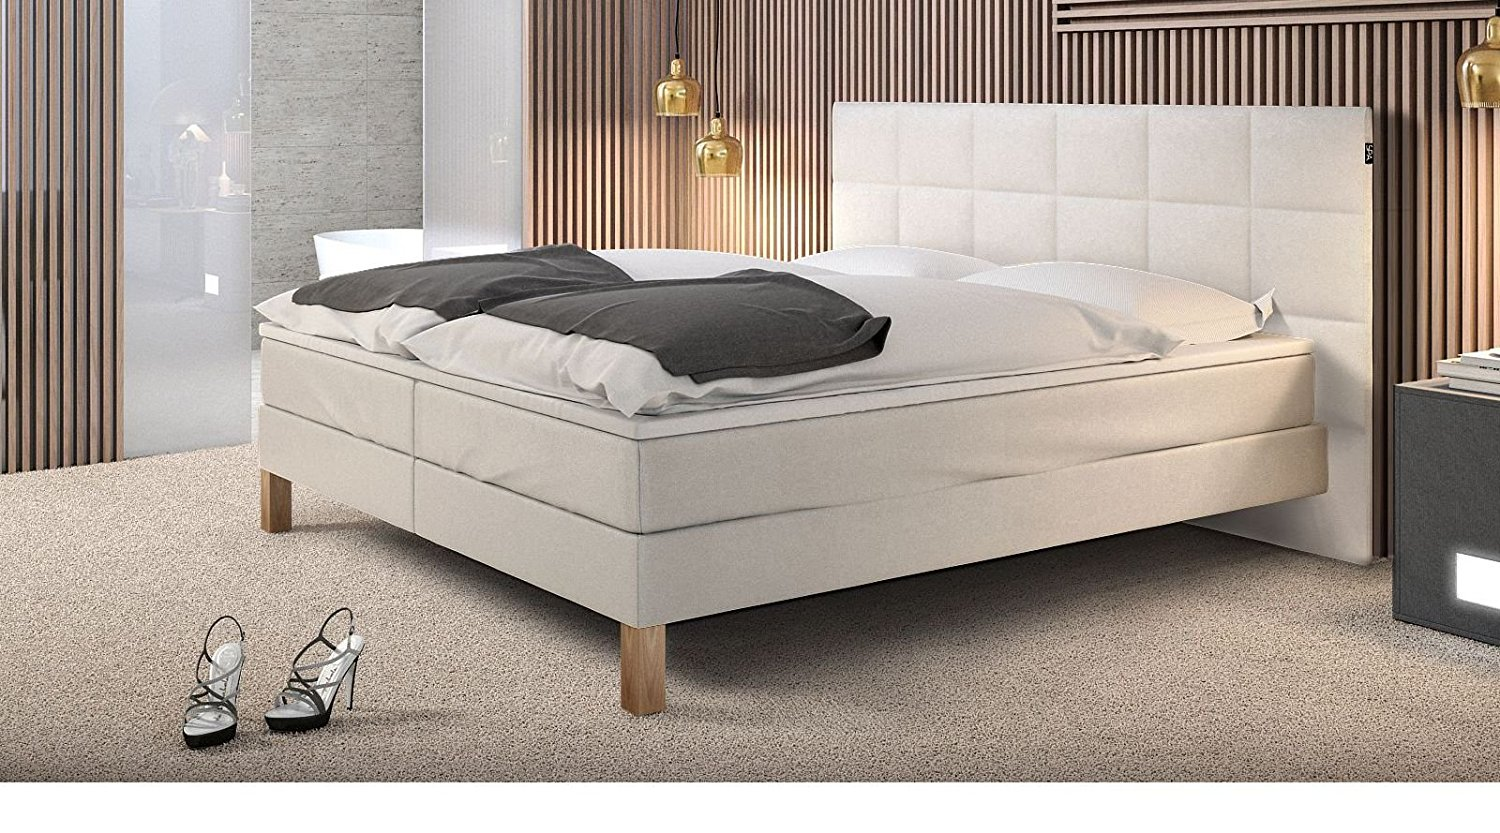 boxspringbett test vergleich testberichte 2018. Black Bedroom Furniture Sets. Home Design Ideas